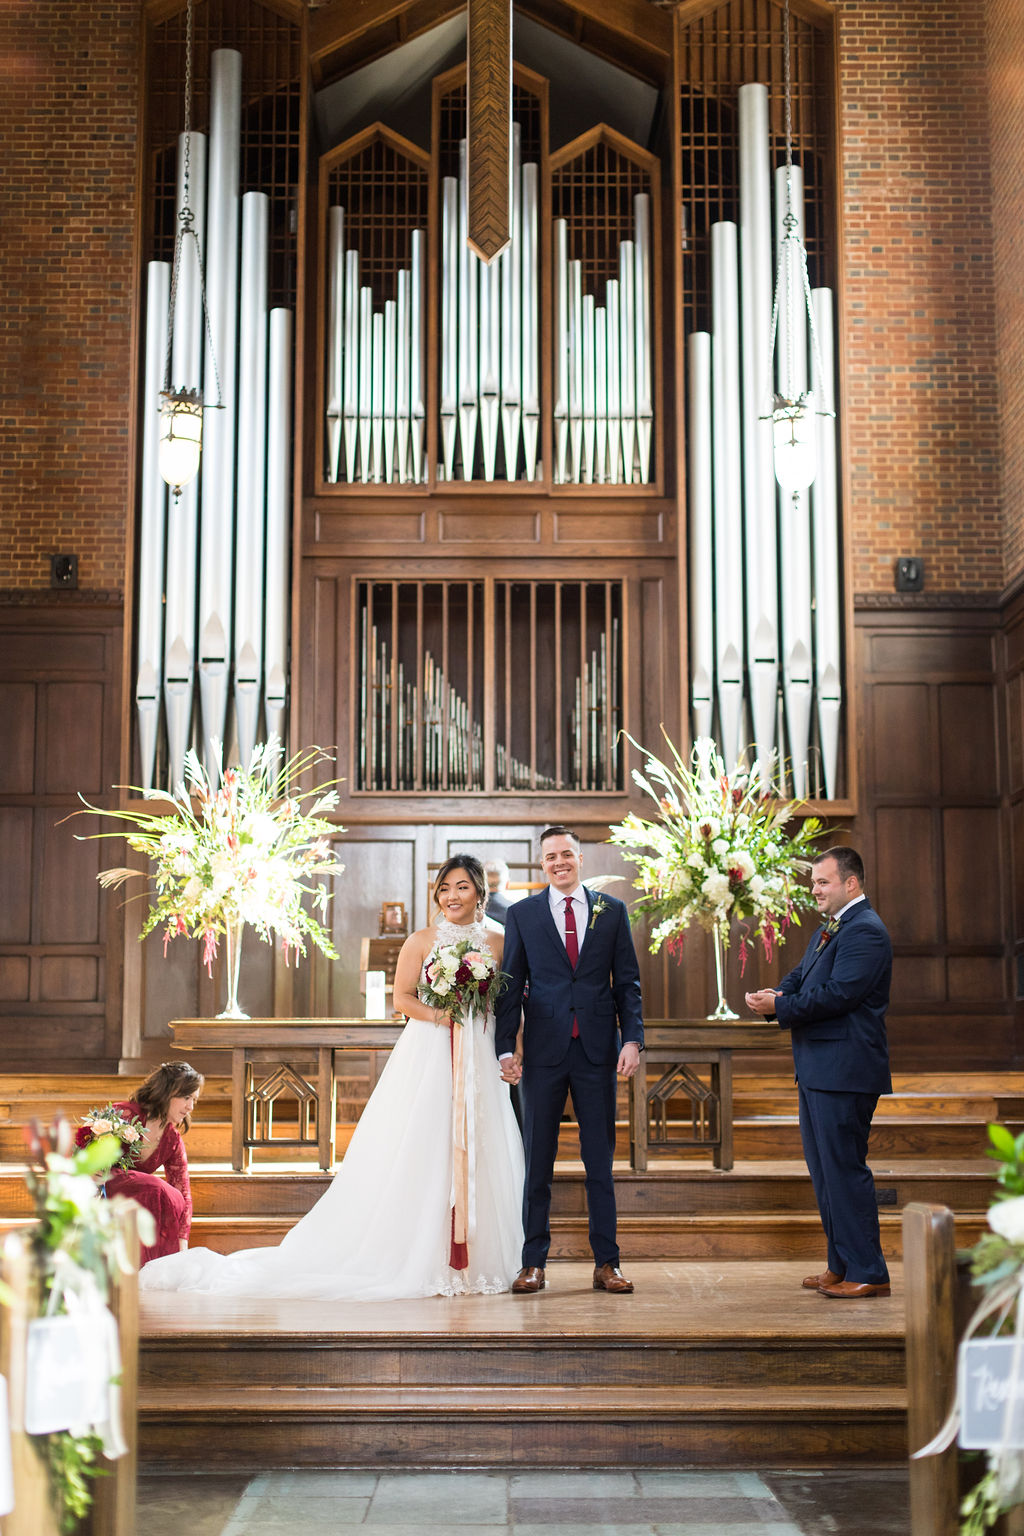 Couple standard at the altar in Wightman, smiling toward guests